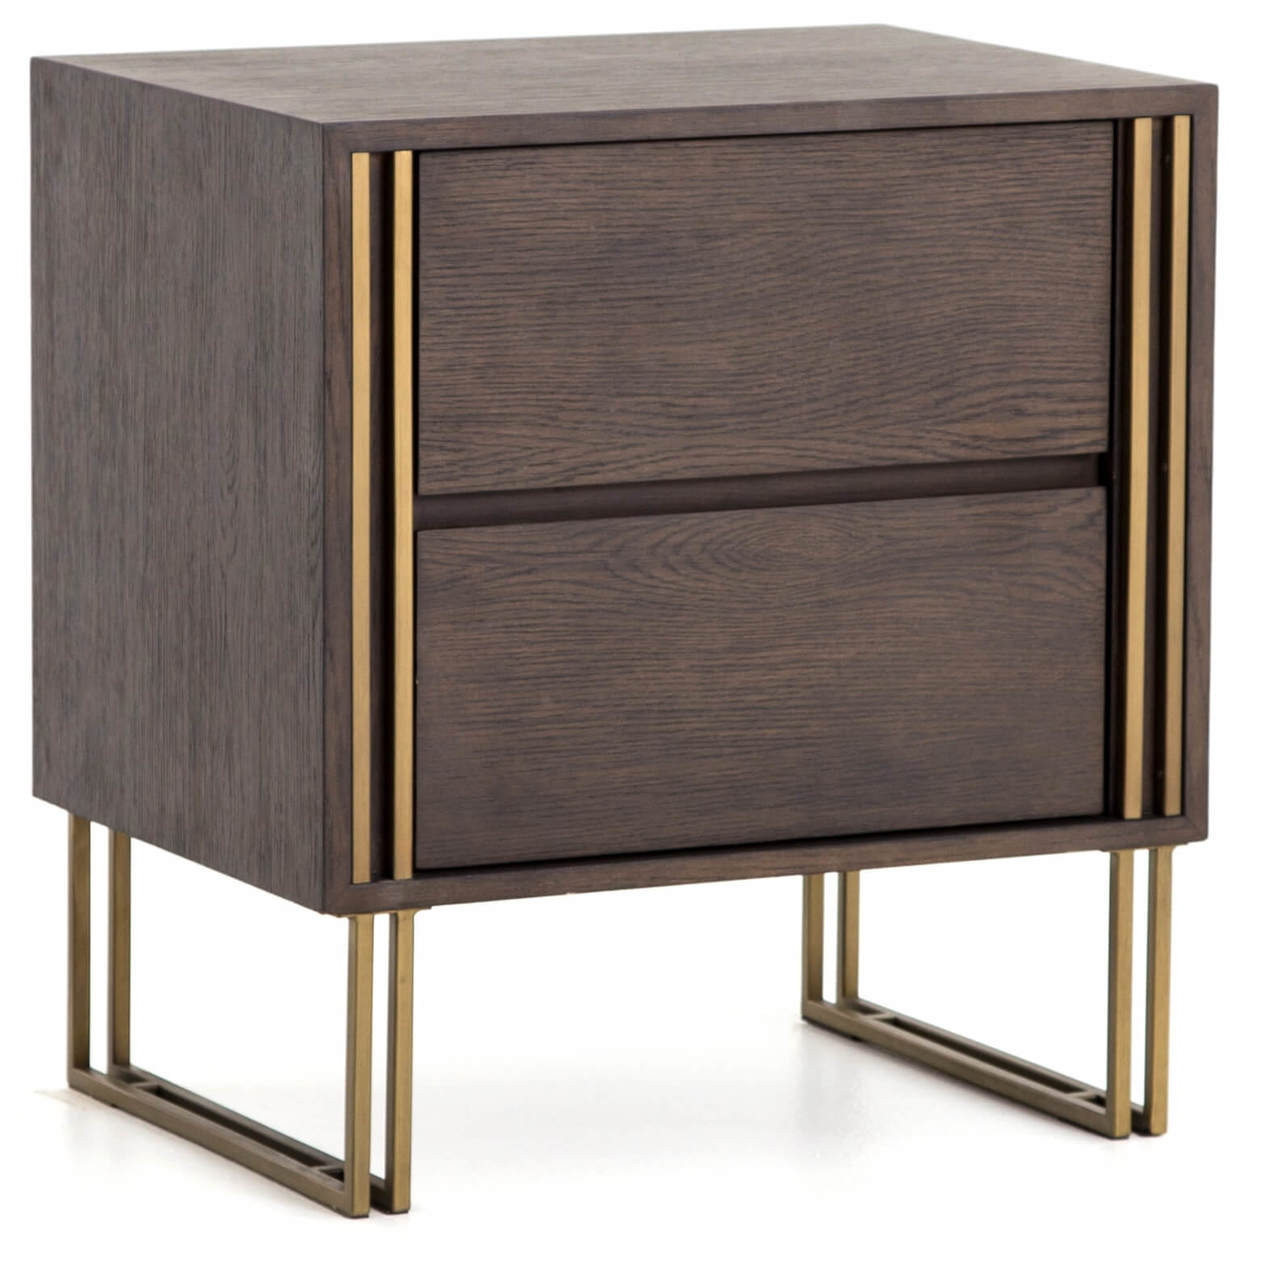 Samara Brass Black Oak Wood 2 Drawer Nightstand